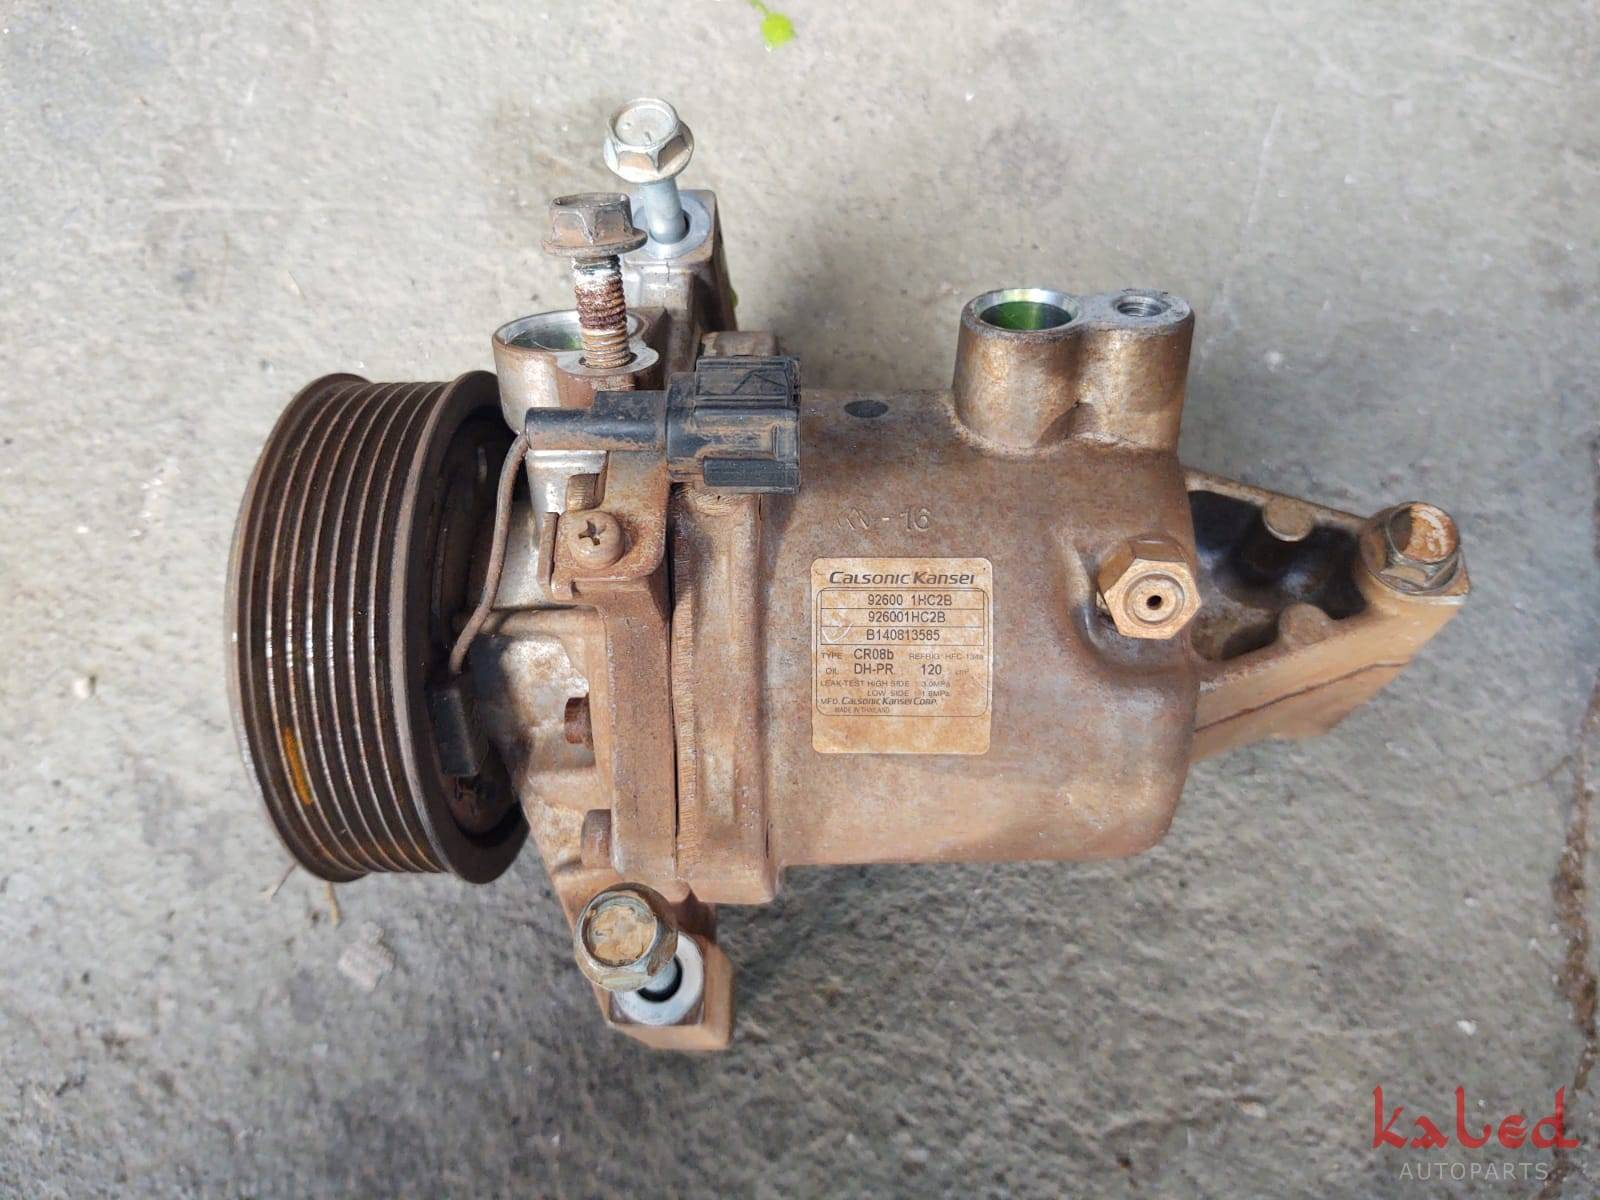 Compresso ar condicionado Nissan March 1.6 16v 92600 1HC2B - Kaled Auto Parts